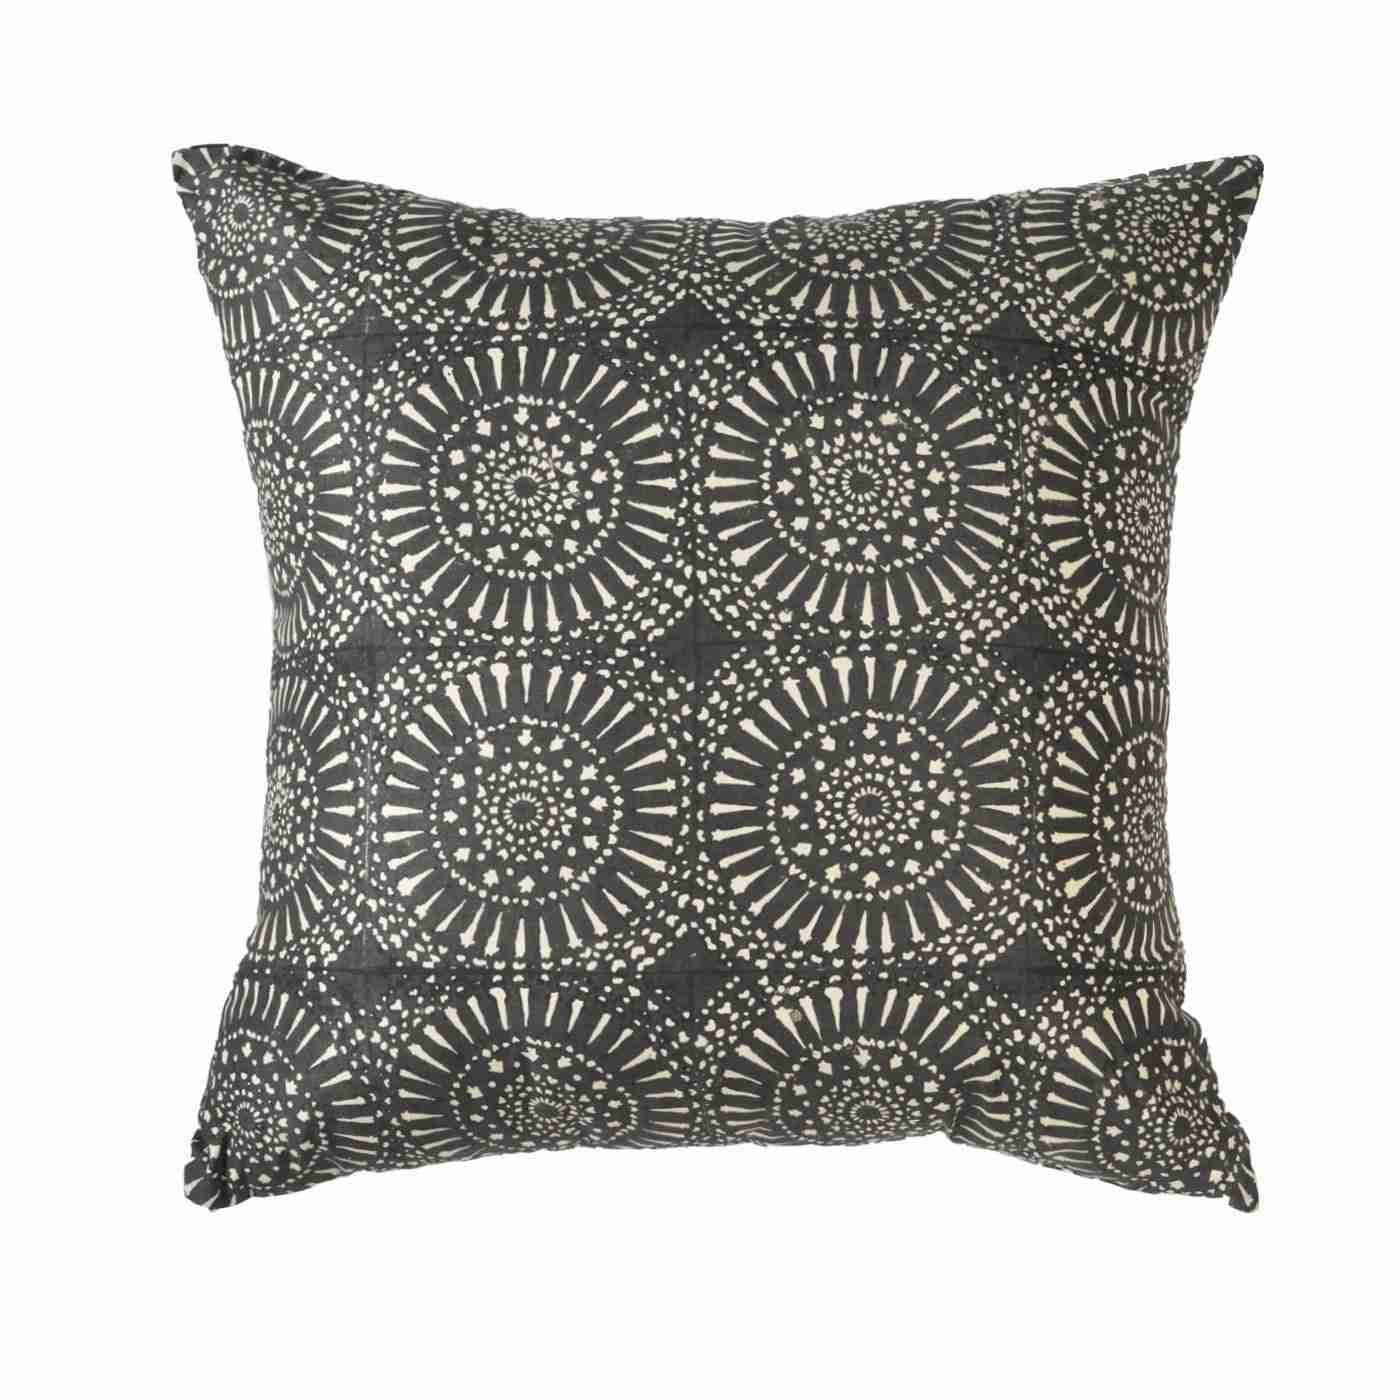 Sphere Print Black Medium cushion 50x50cm